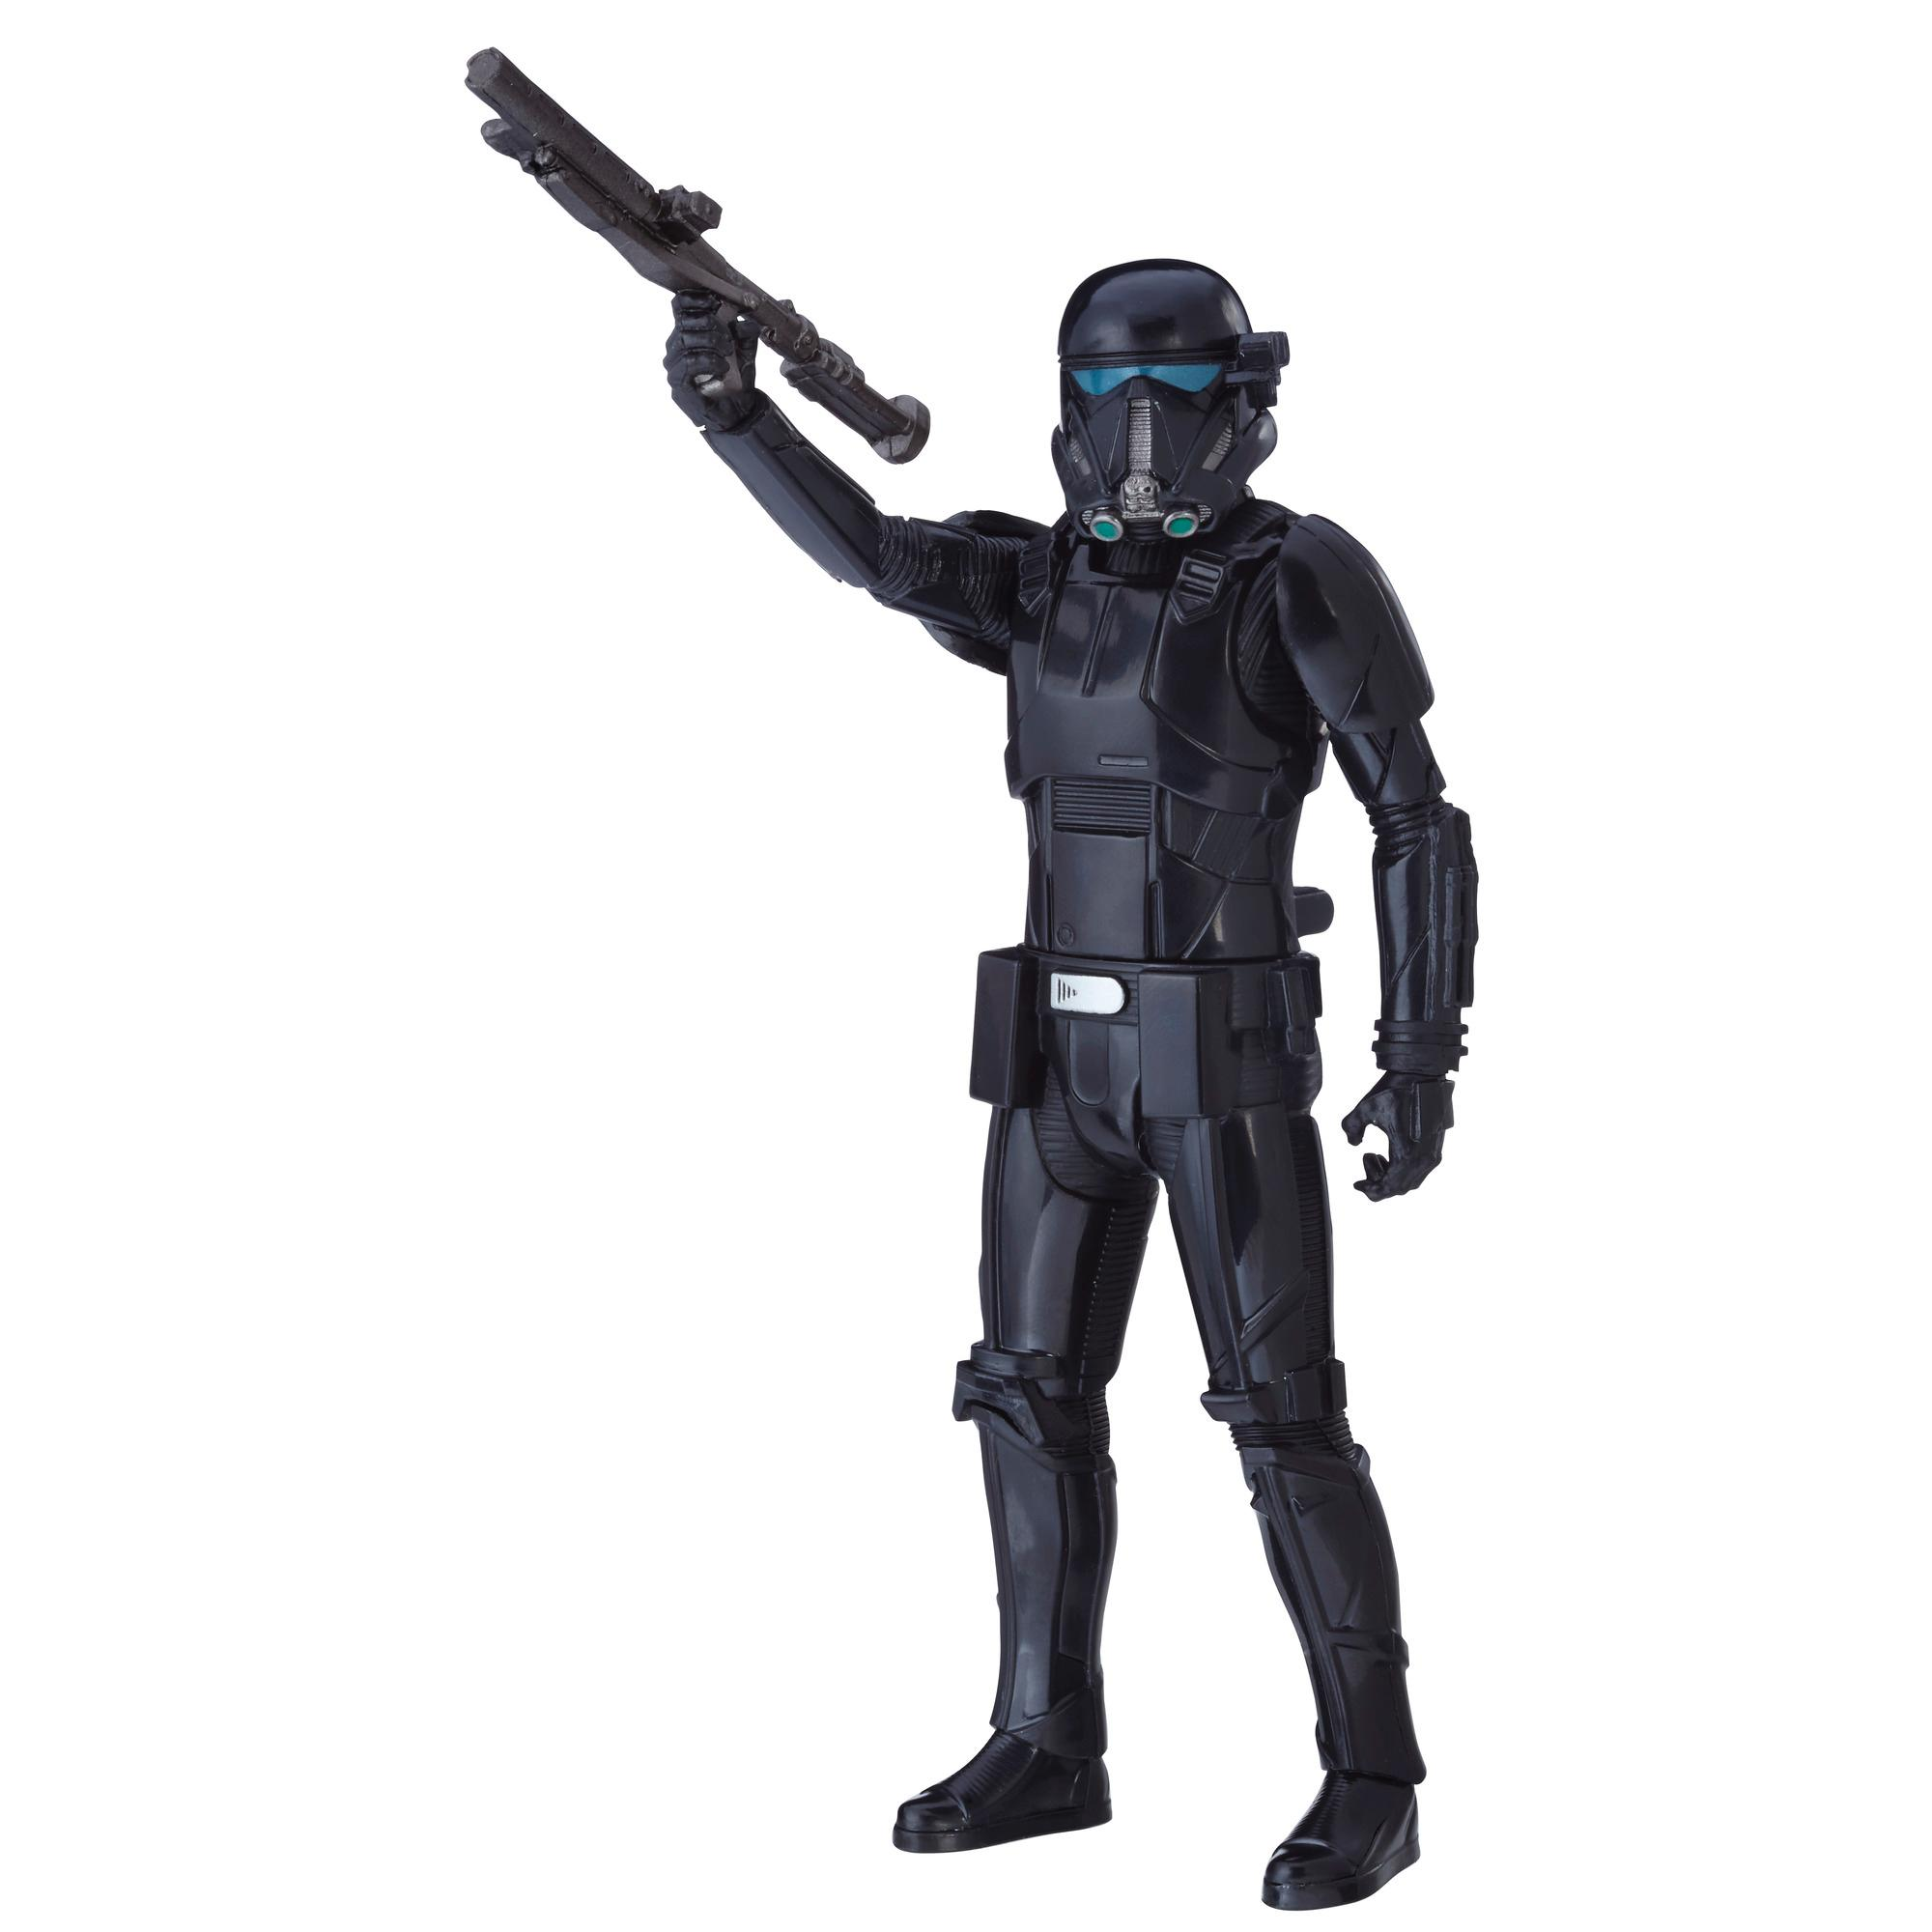 Star Wars: Rogue One 6-inch Imperial Death Trooper